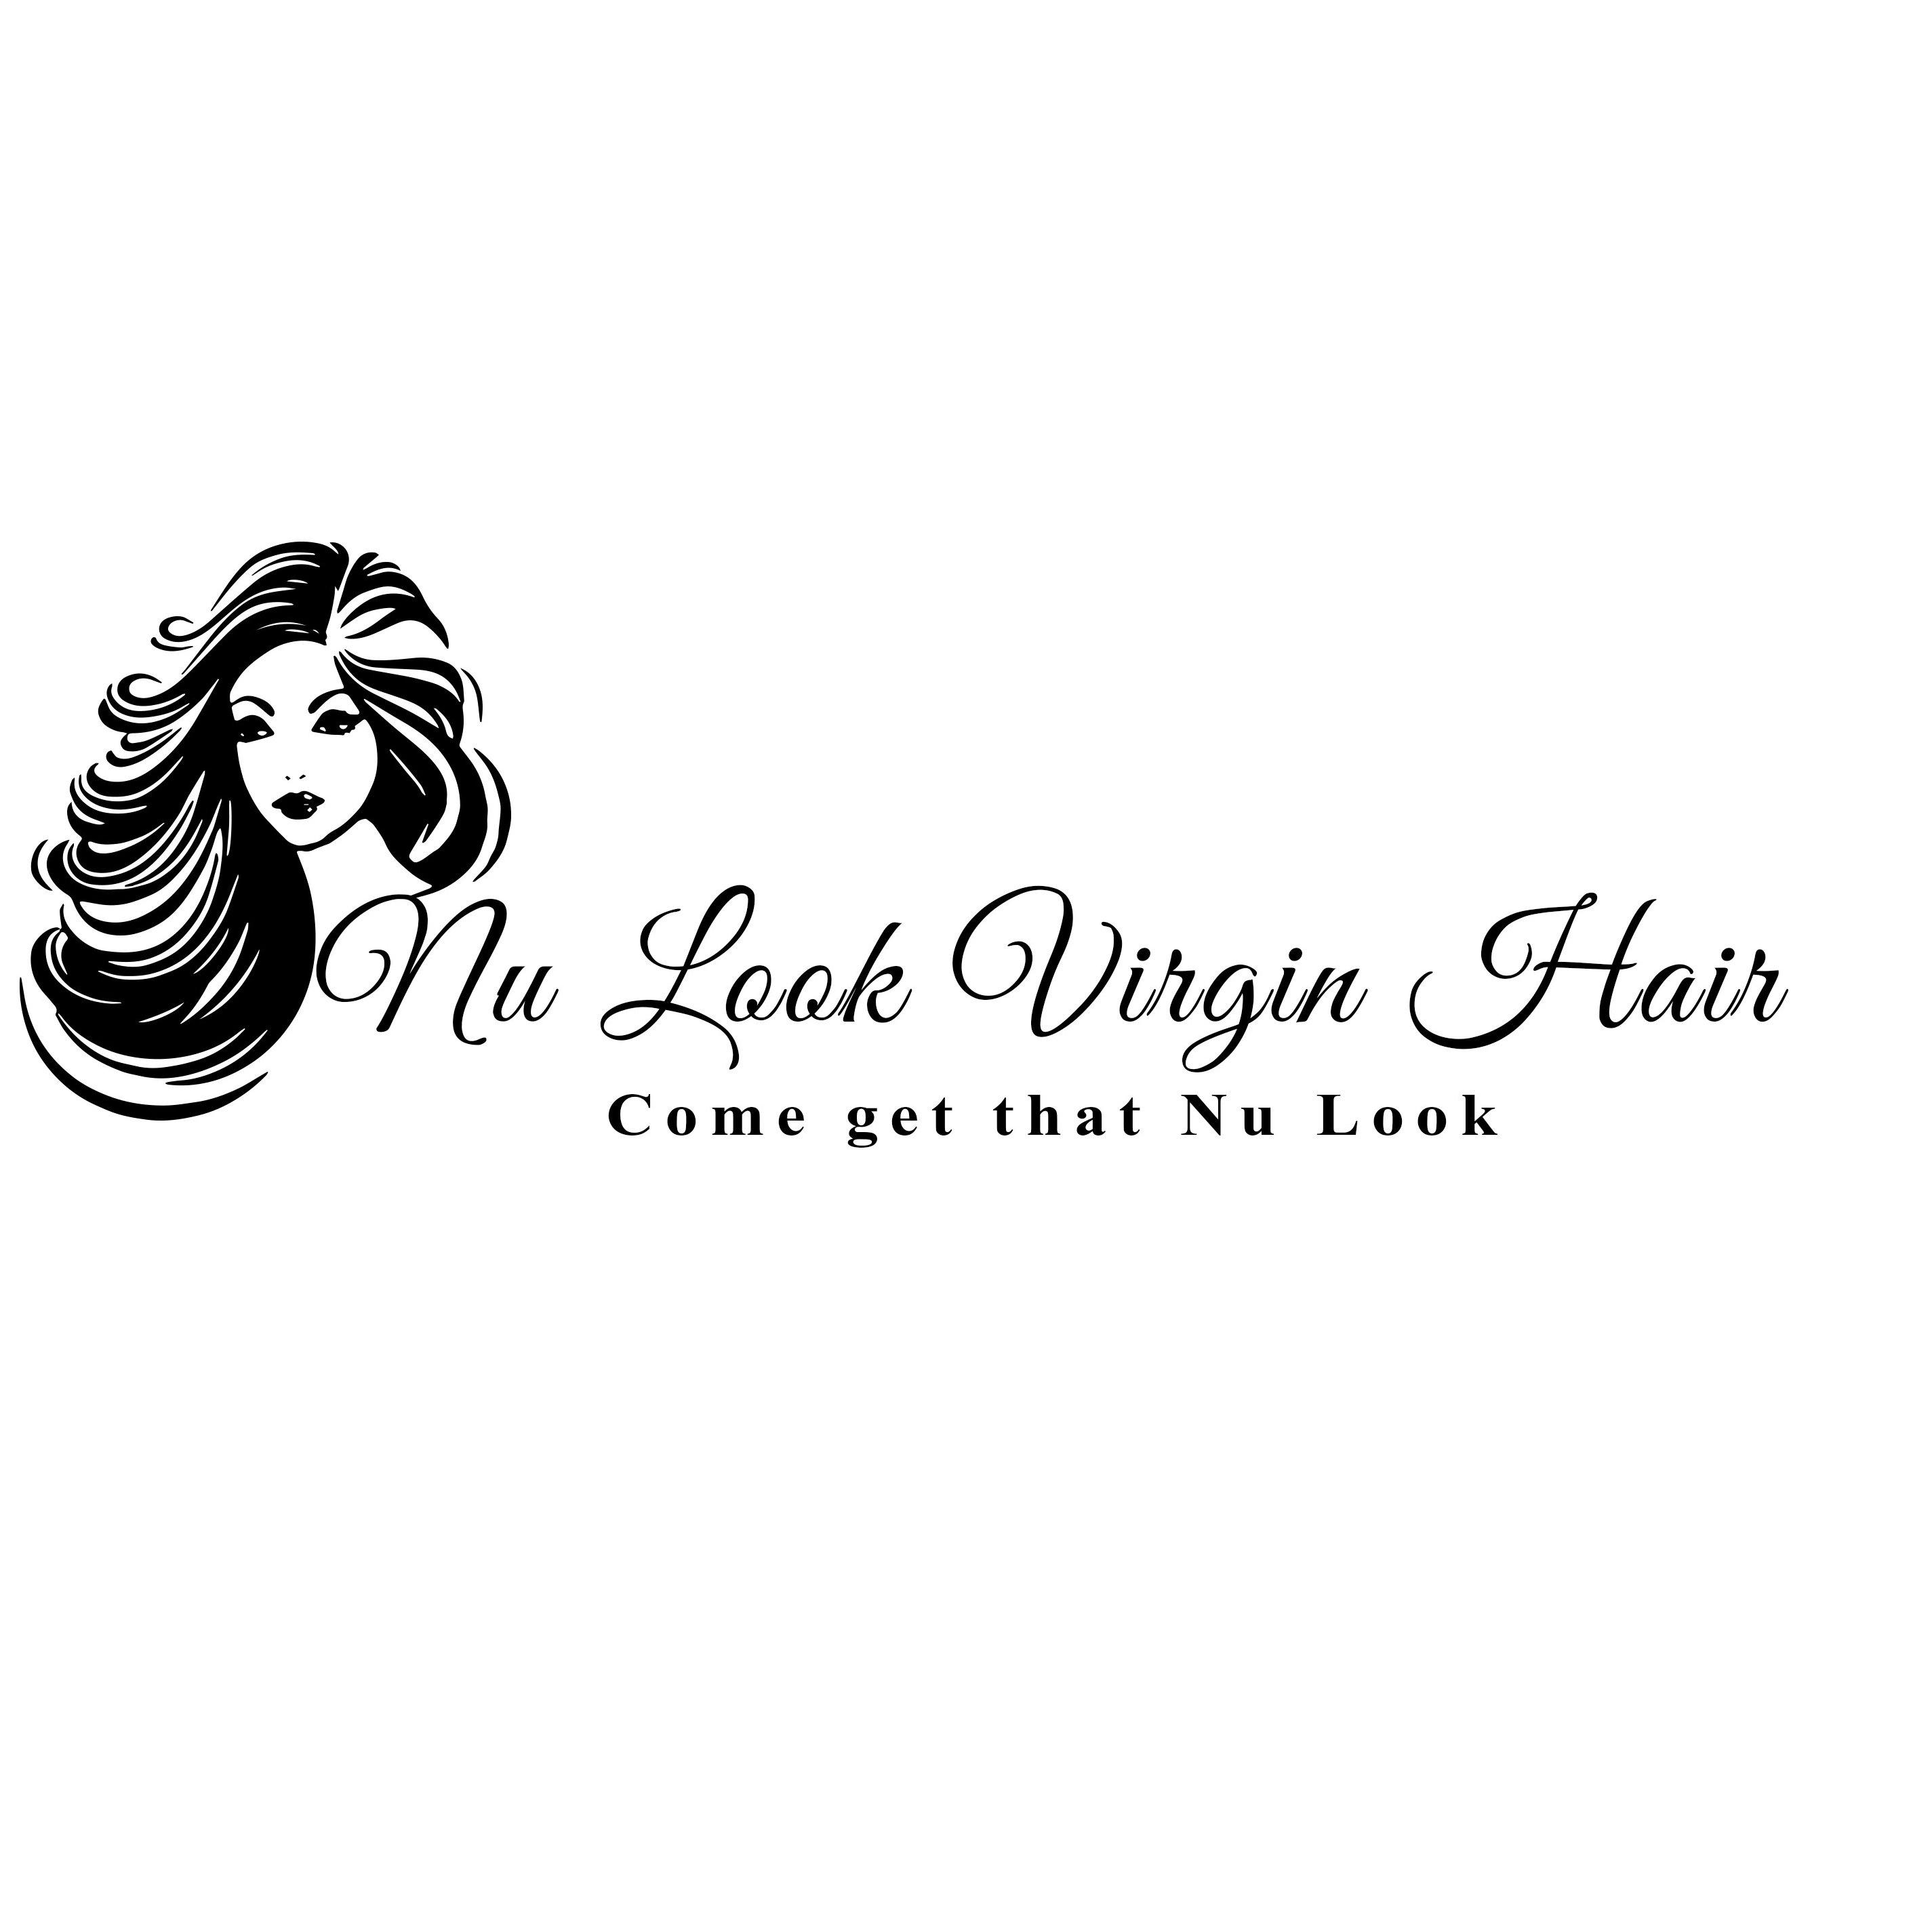 Nu Look Virgin Hair Boutique